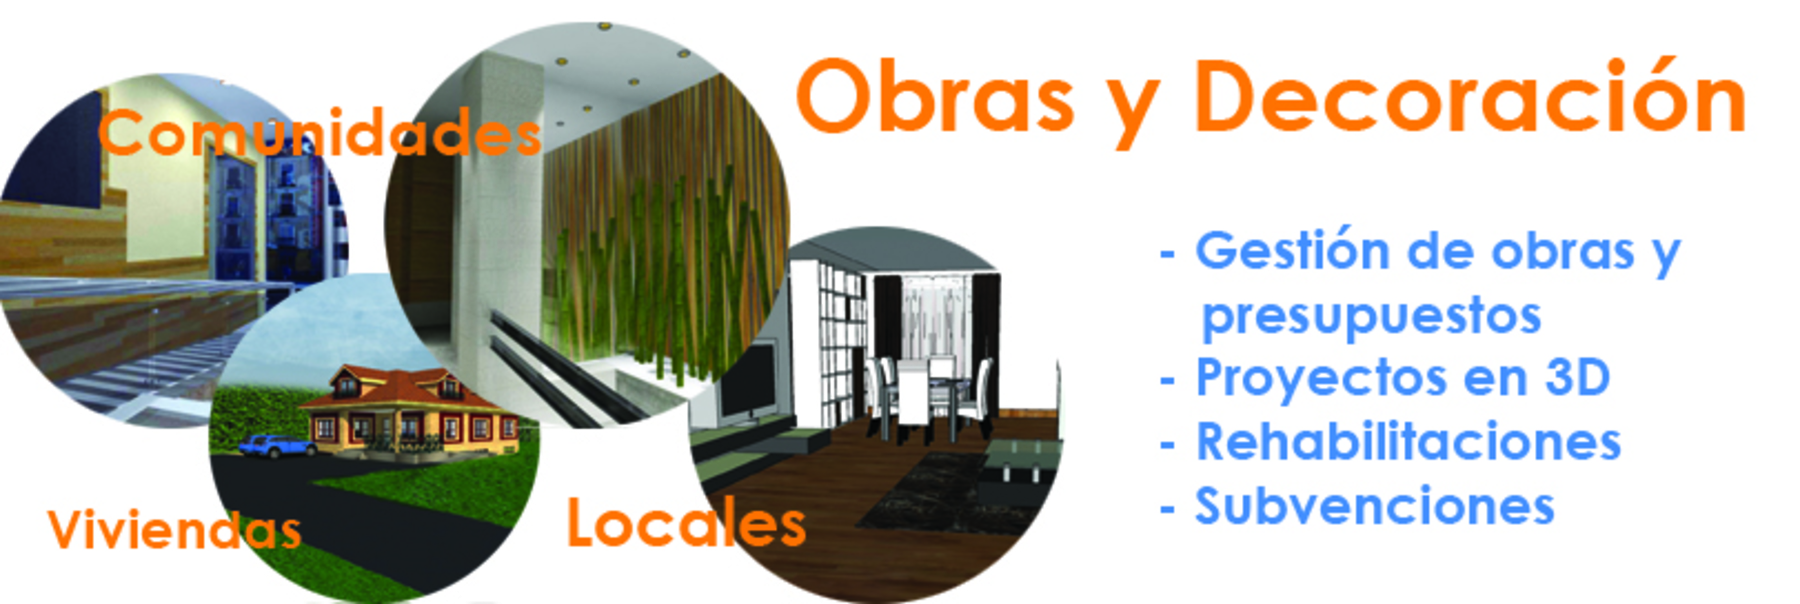 OBRAS Y DECORACIÓN